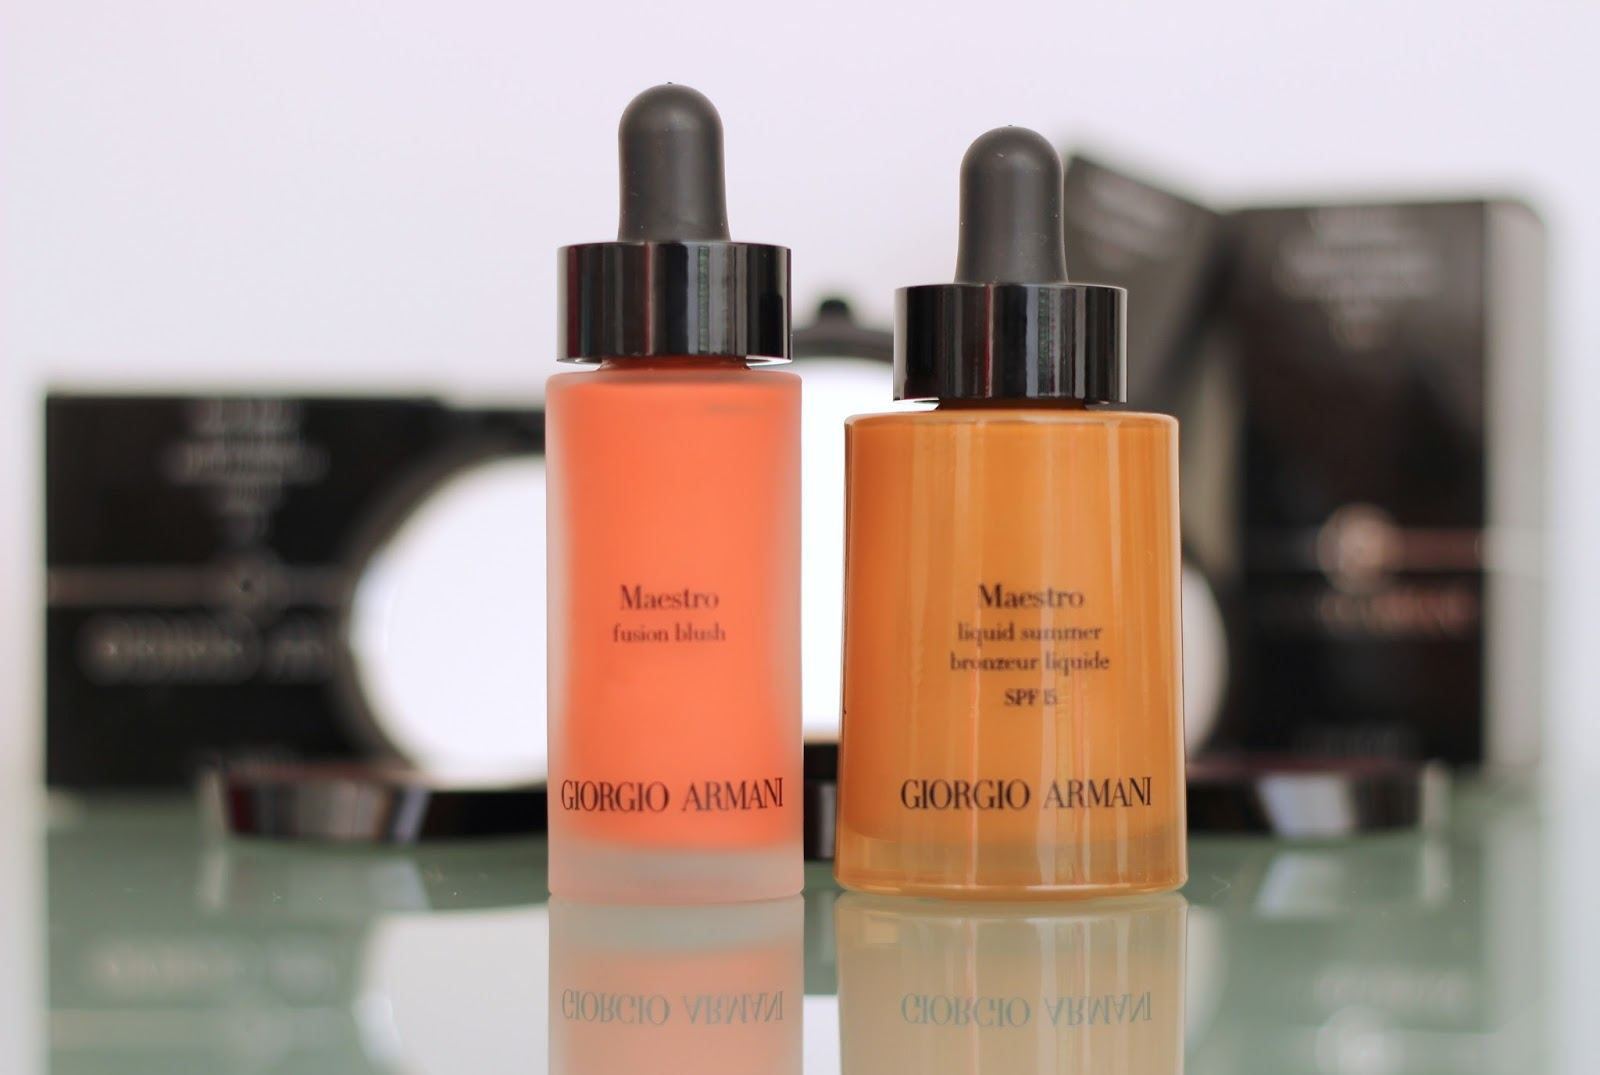 Giorgio armani maestro sun summer 2017 collection